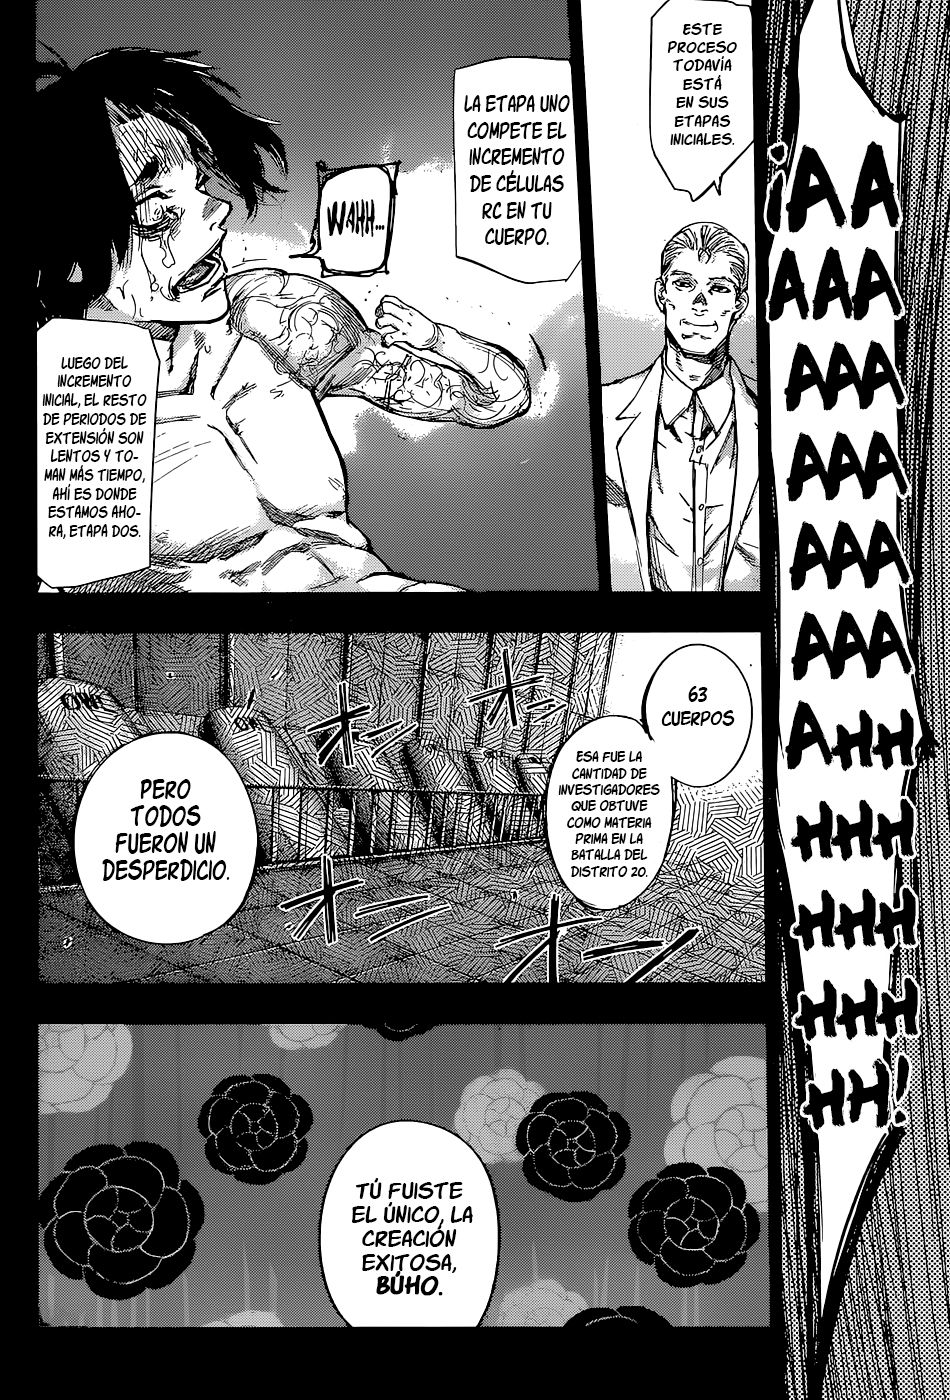 http://c5.ninemanga.com/es_manga/pic2/59/59/494698/a037f73986ee673263e5140067d9914c.jpg Page 7